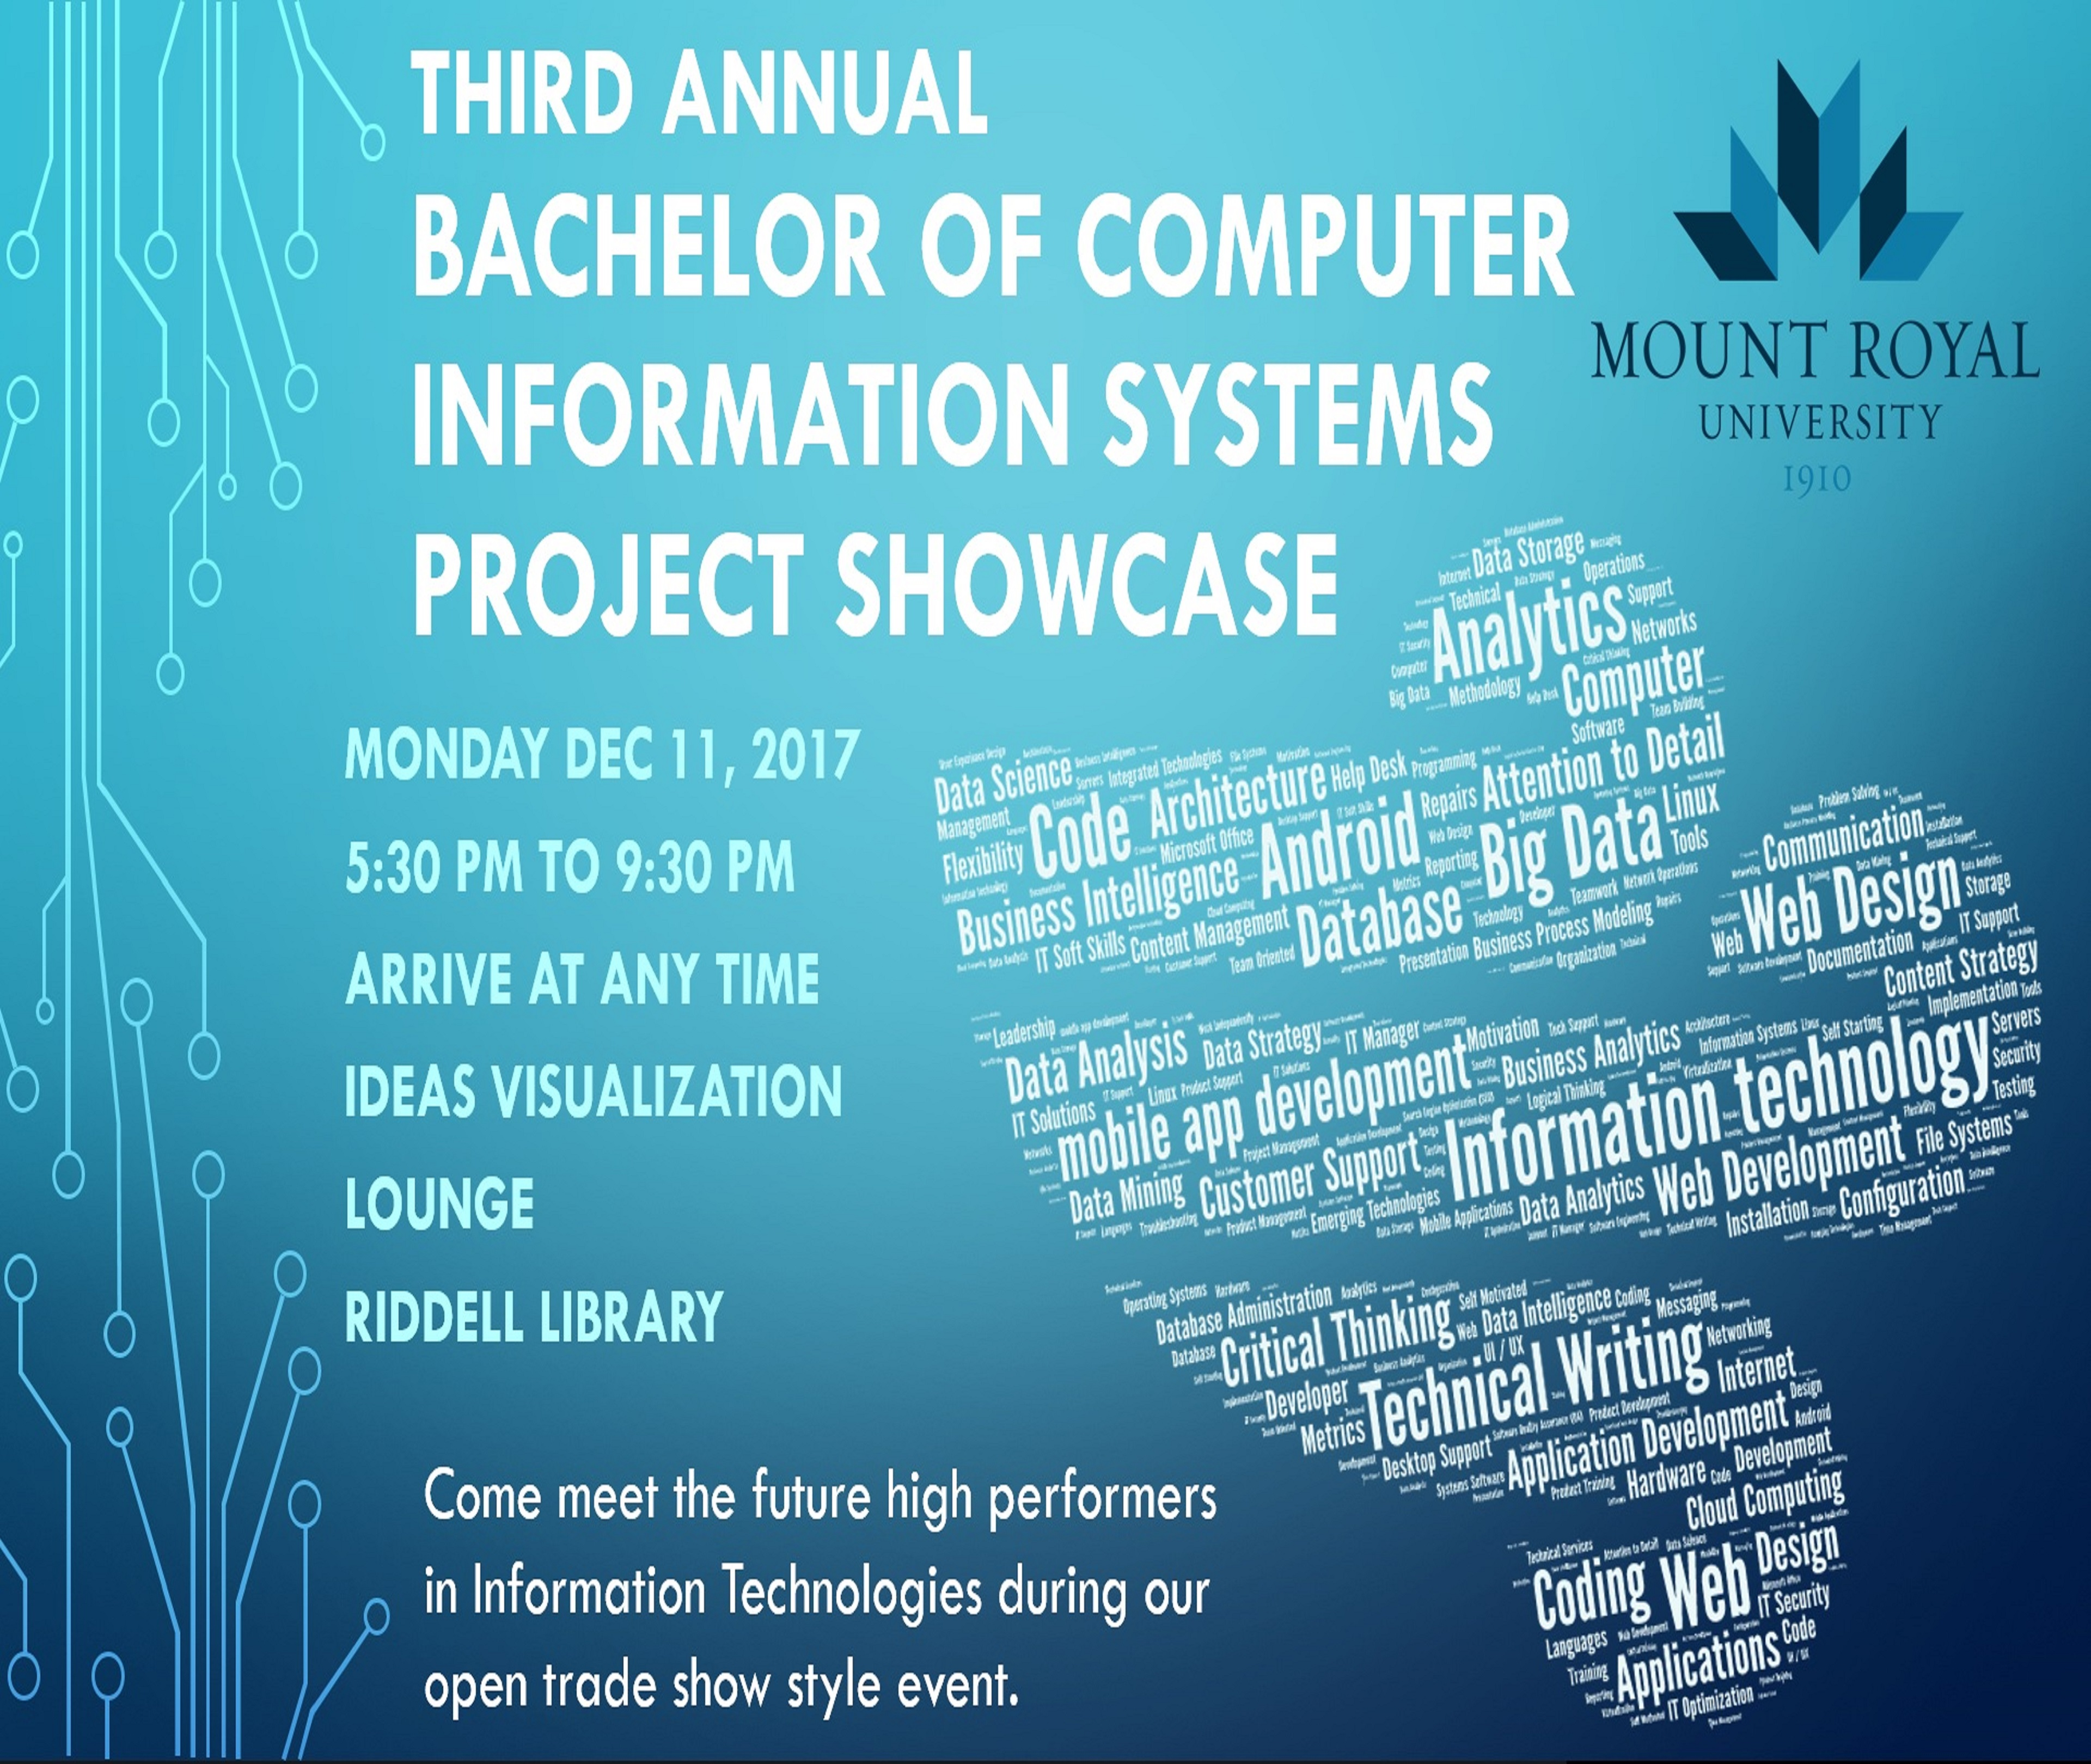 3rd Annual Bachelor of Computer Information Systems Showcase